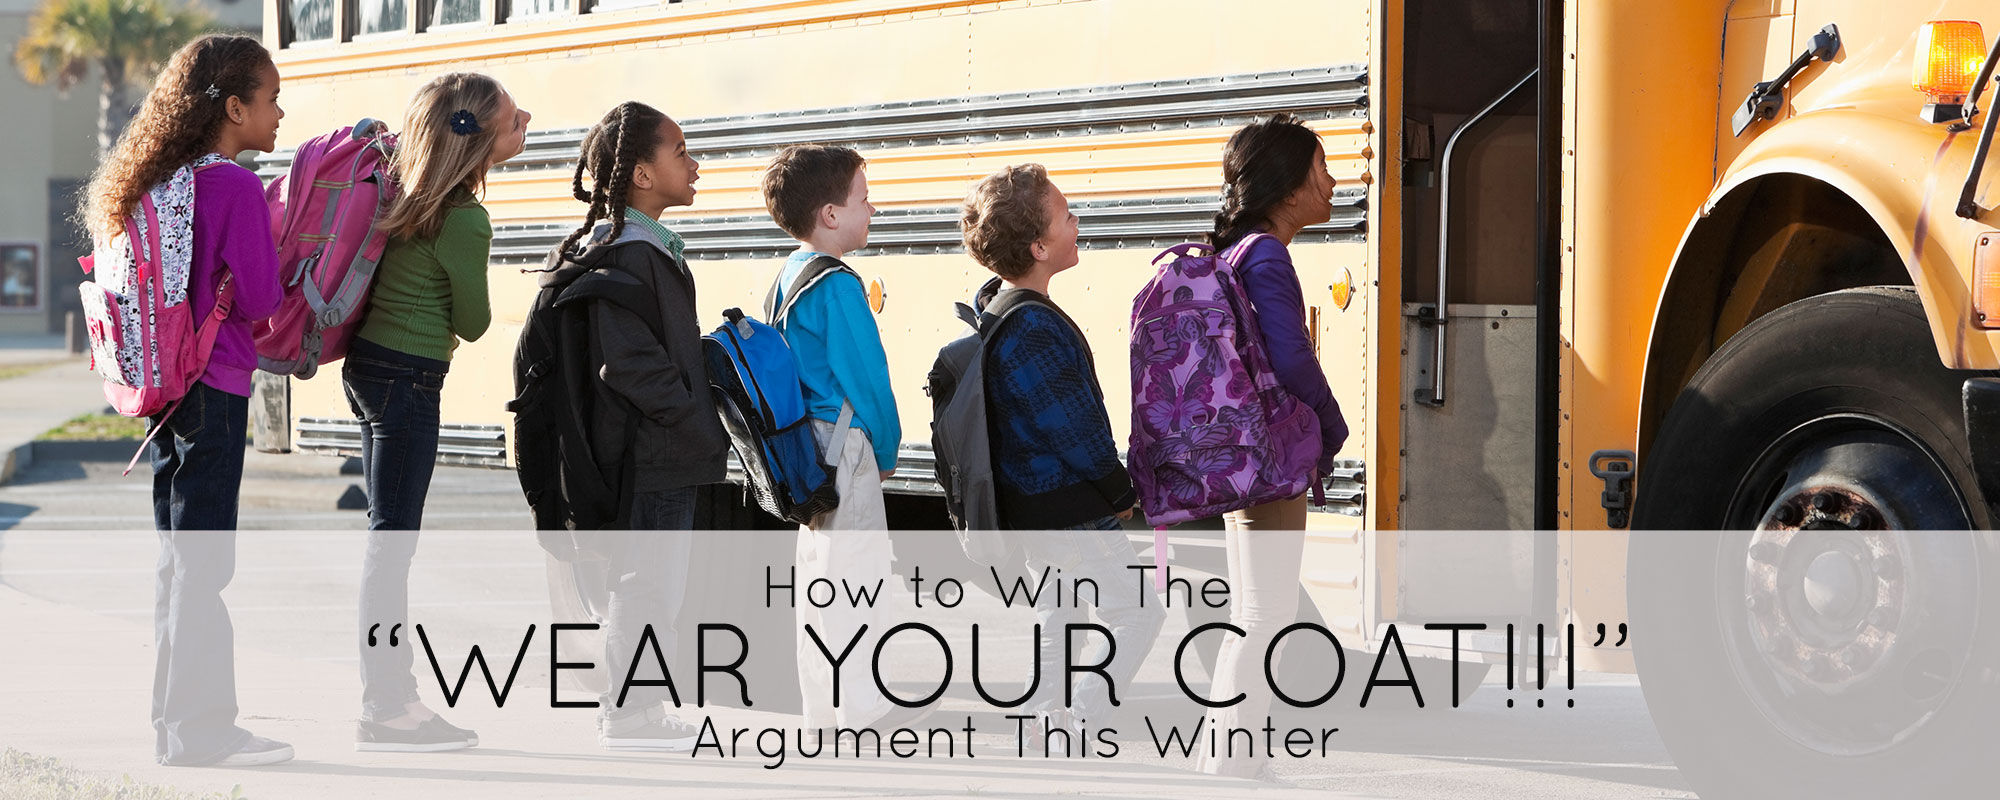 How to win the wear your jacket argument this winter.